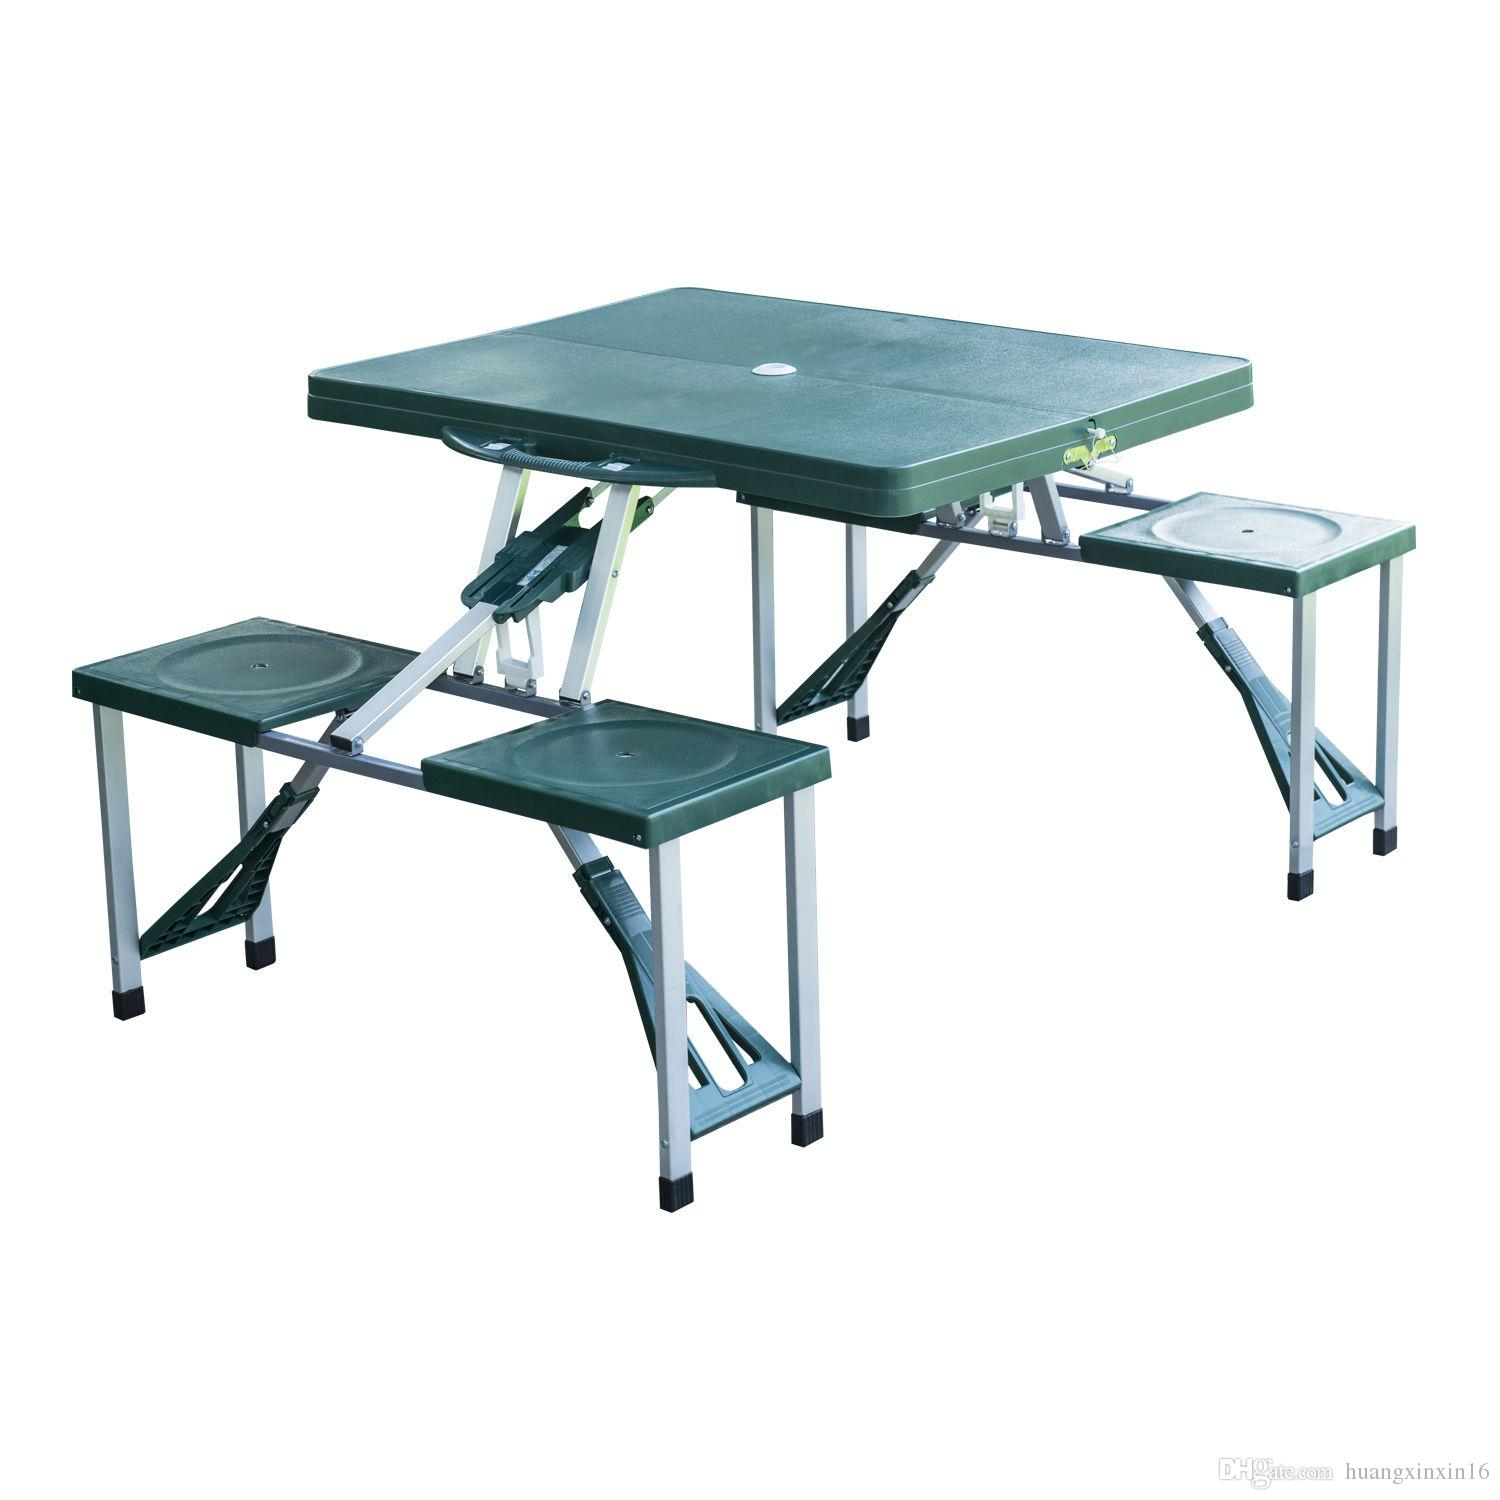 2018 Outdoor Portable Folding Plastic Garden Camping Picnic Table With 4  Seats Green From Huangxinxin16, $44.23 | Dhgate.Com